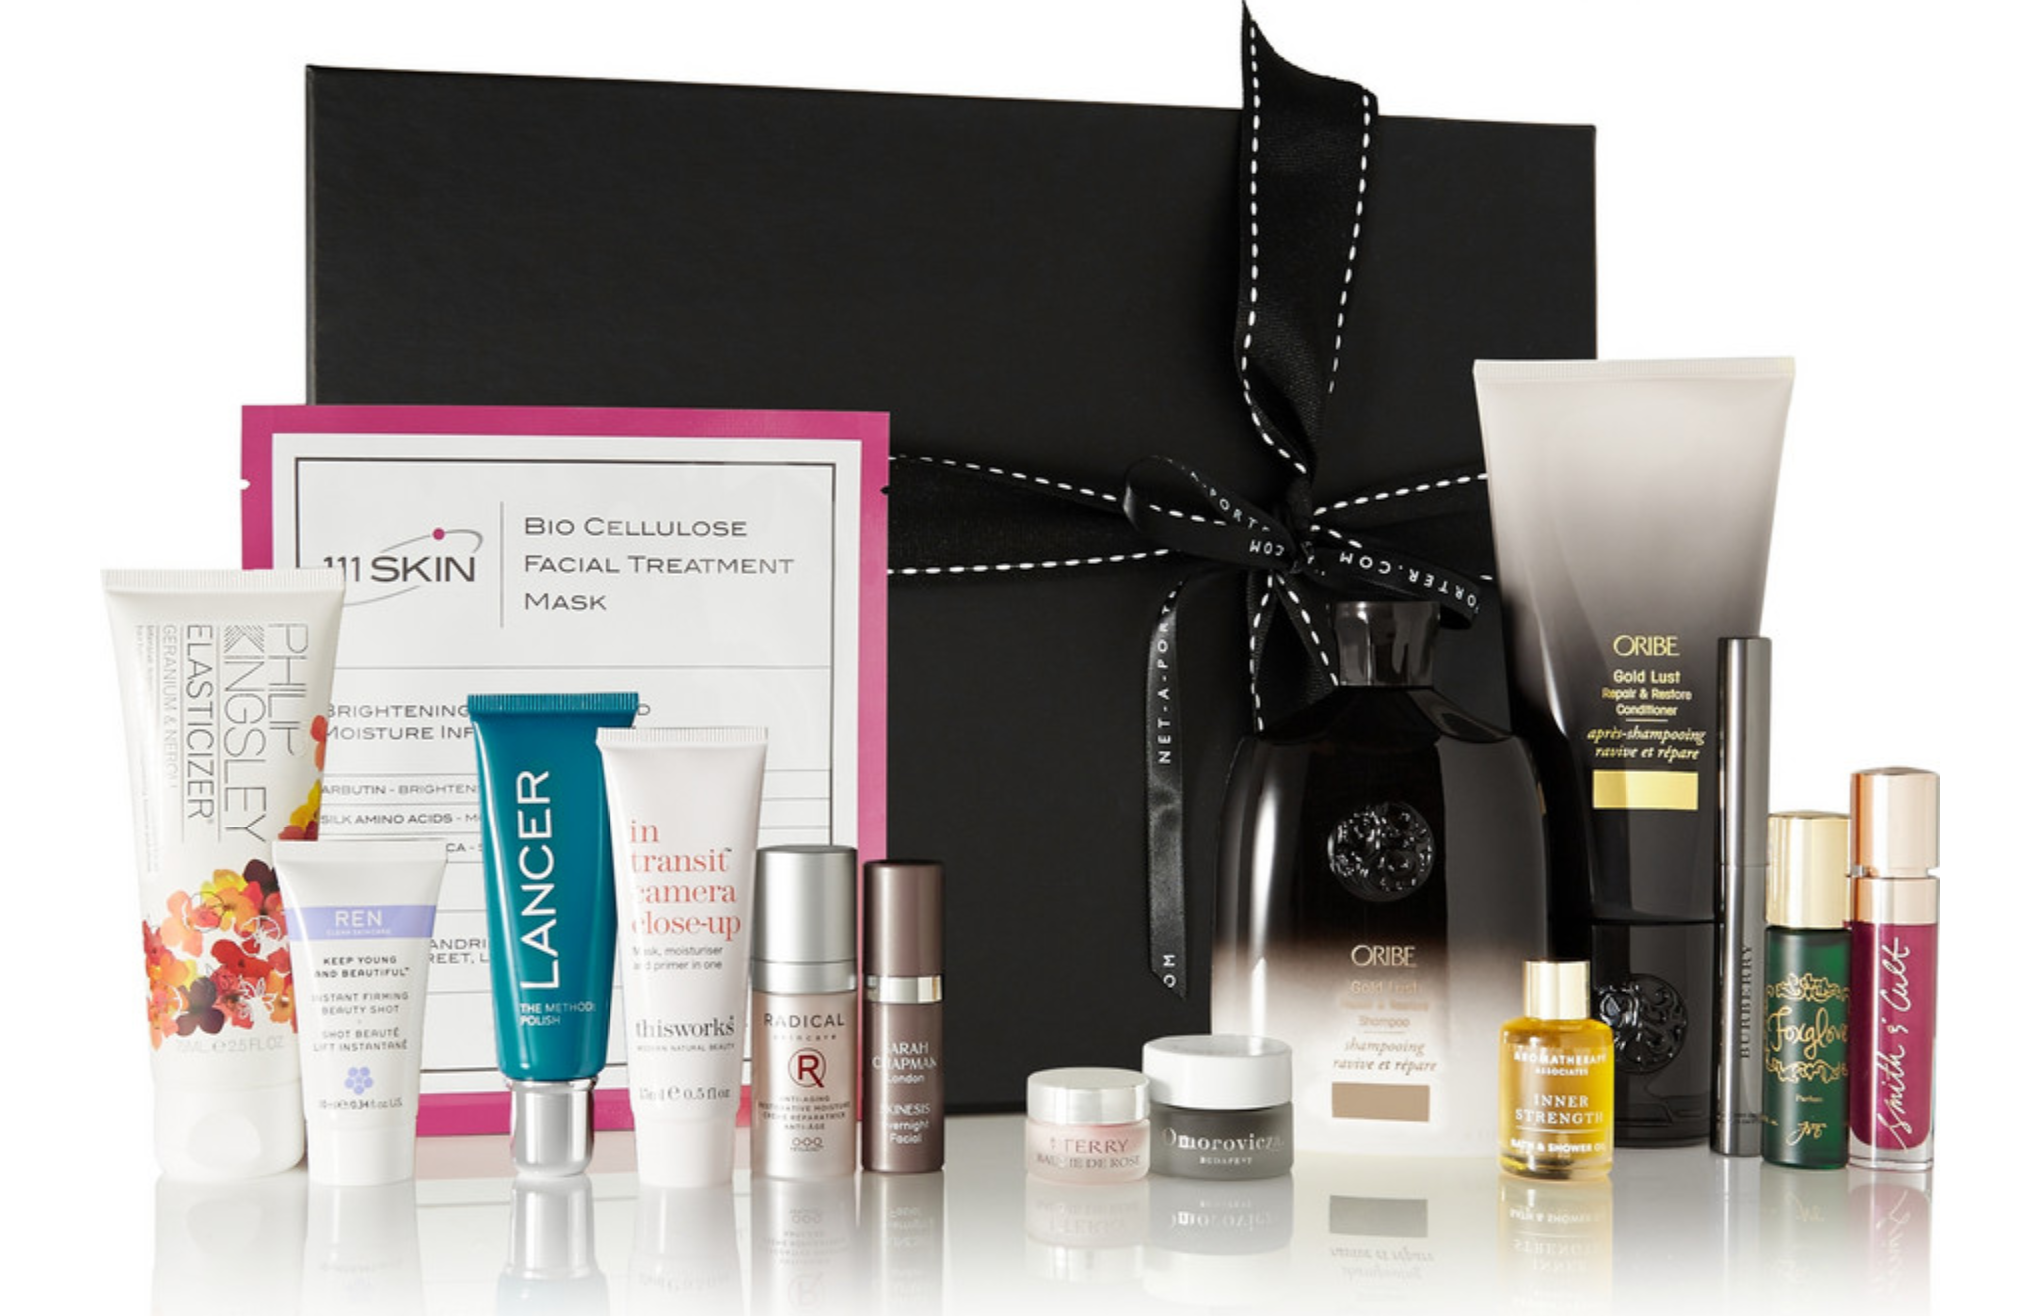 Net-A-Porter Holiday Beauty Box Time!